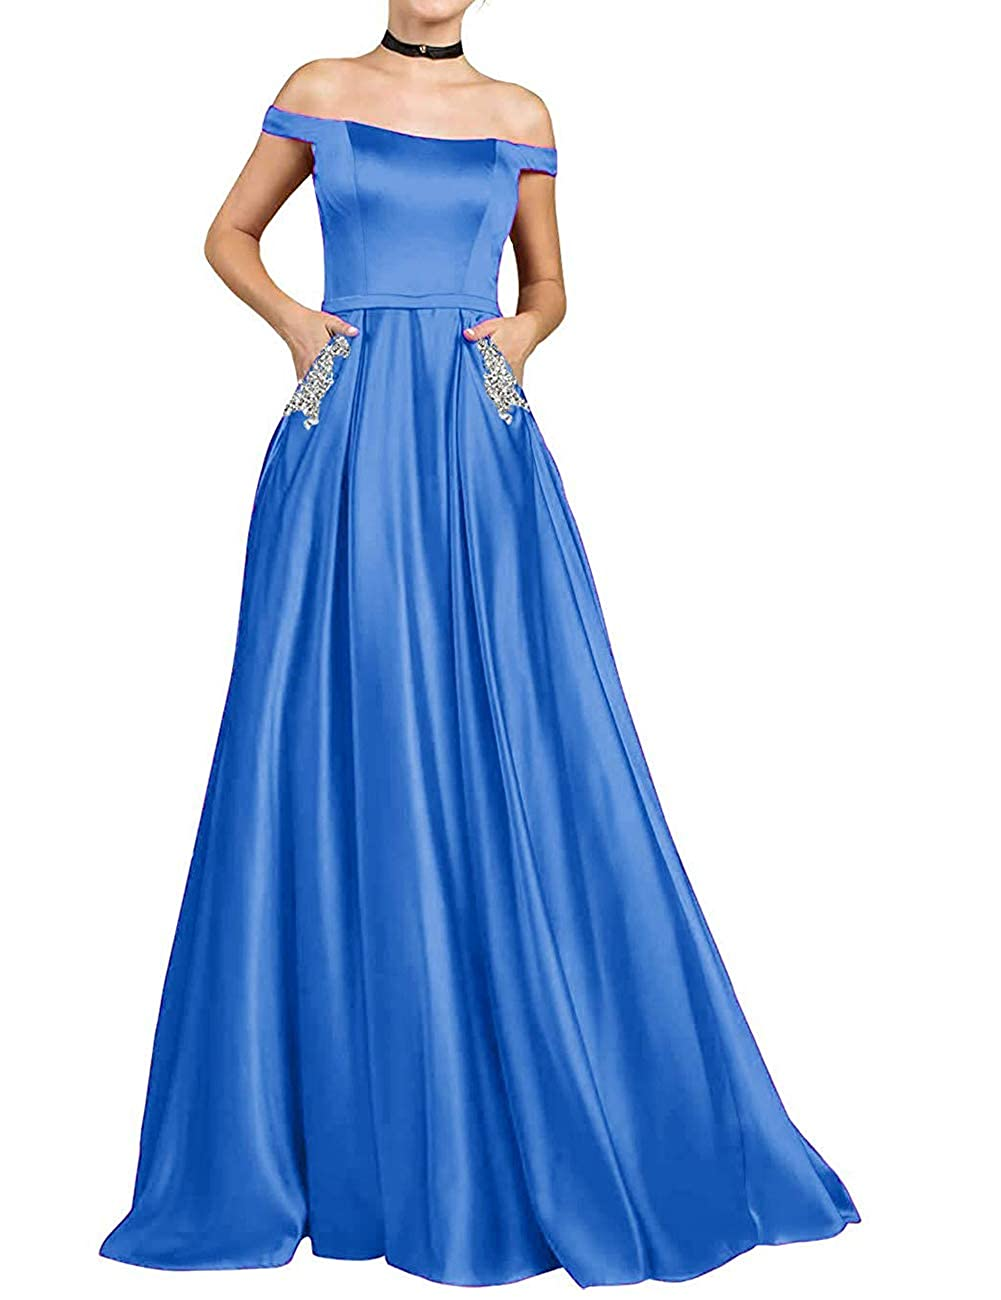 bluee JAEDEN Prom Dresses Long Formal Evening Gowns with Pocket Off The Shoulder Prom Dress A line Evening Dresses